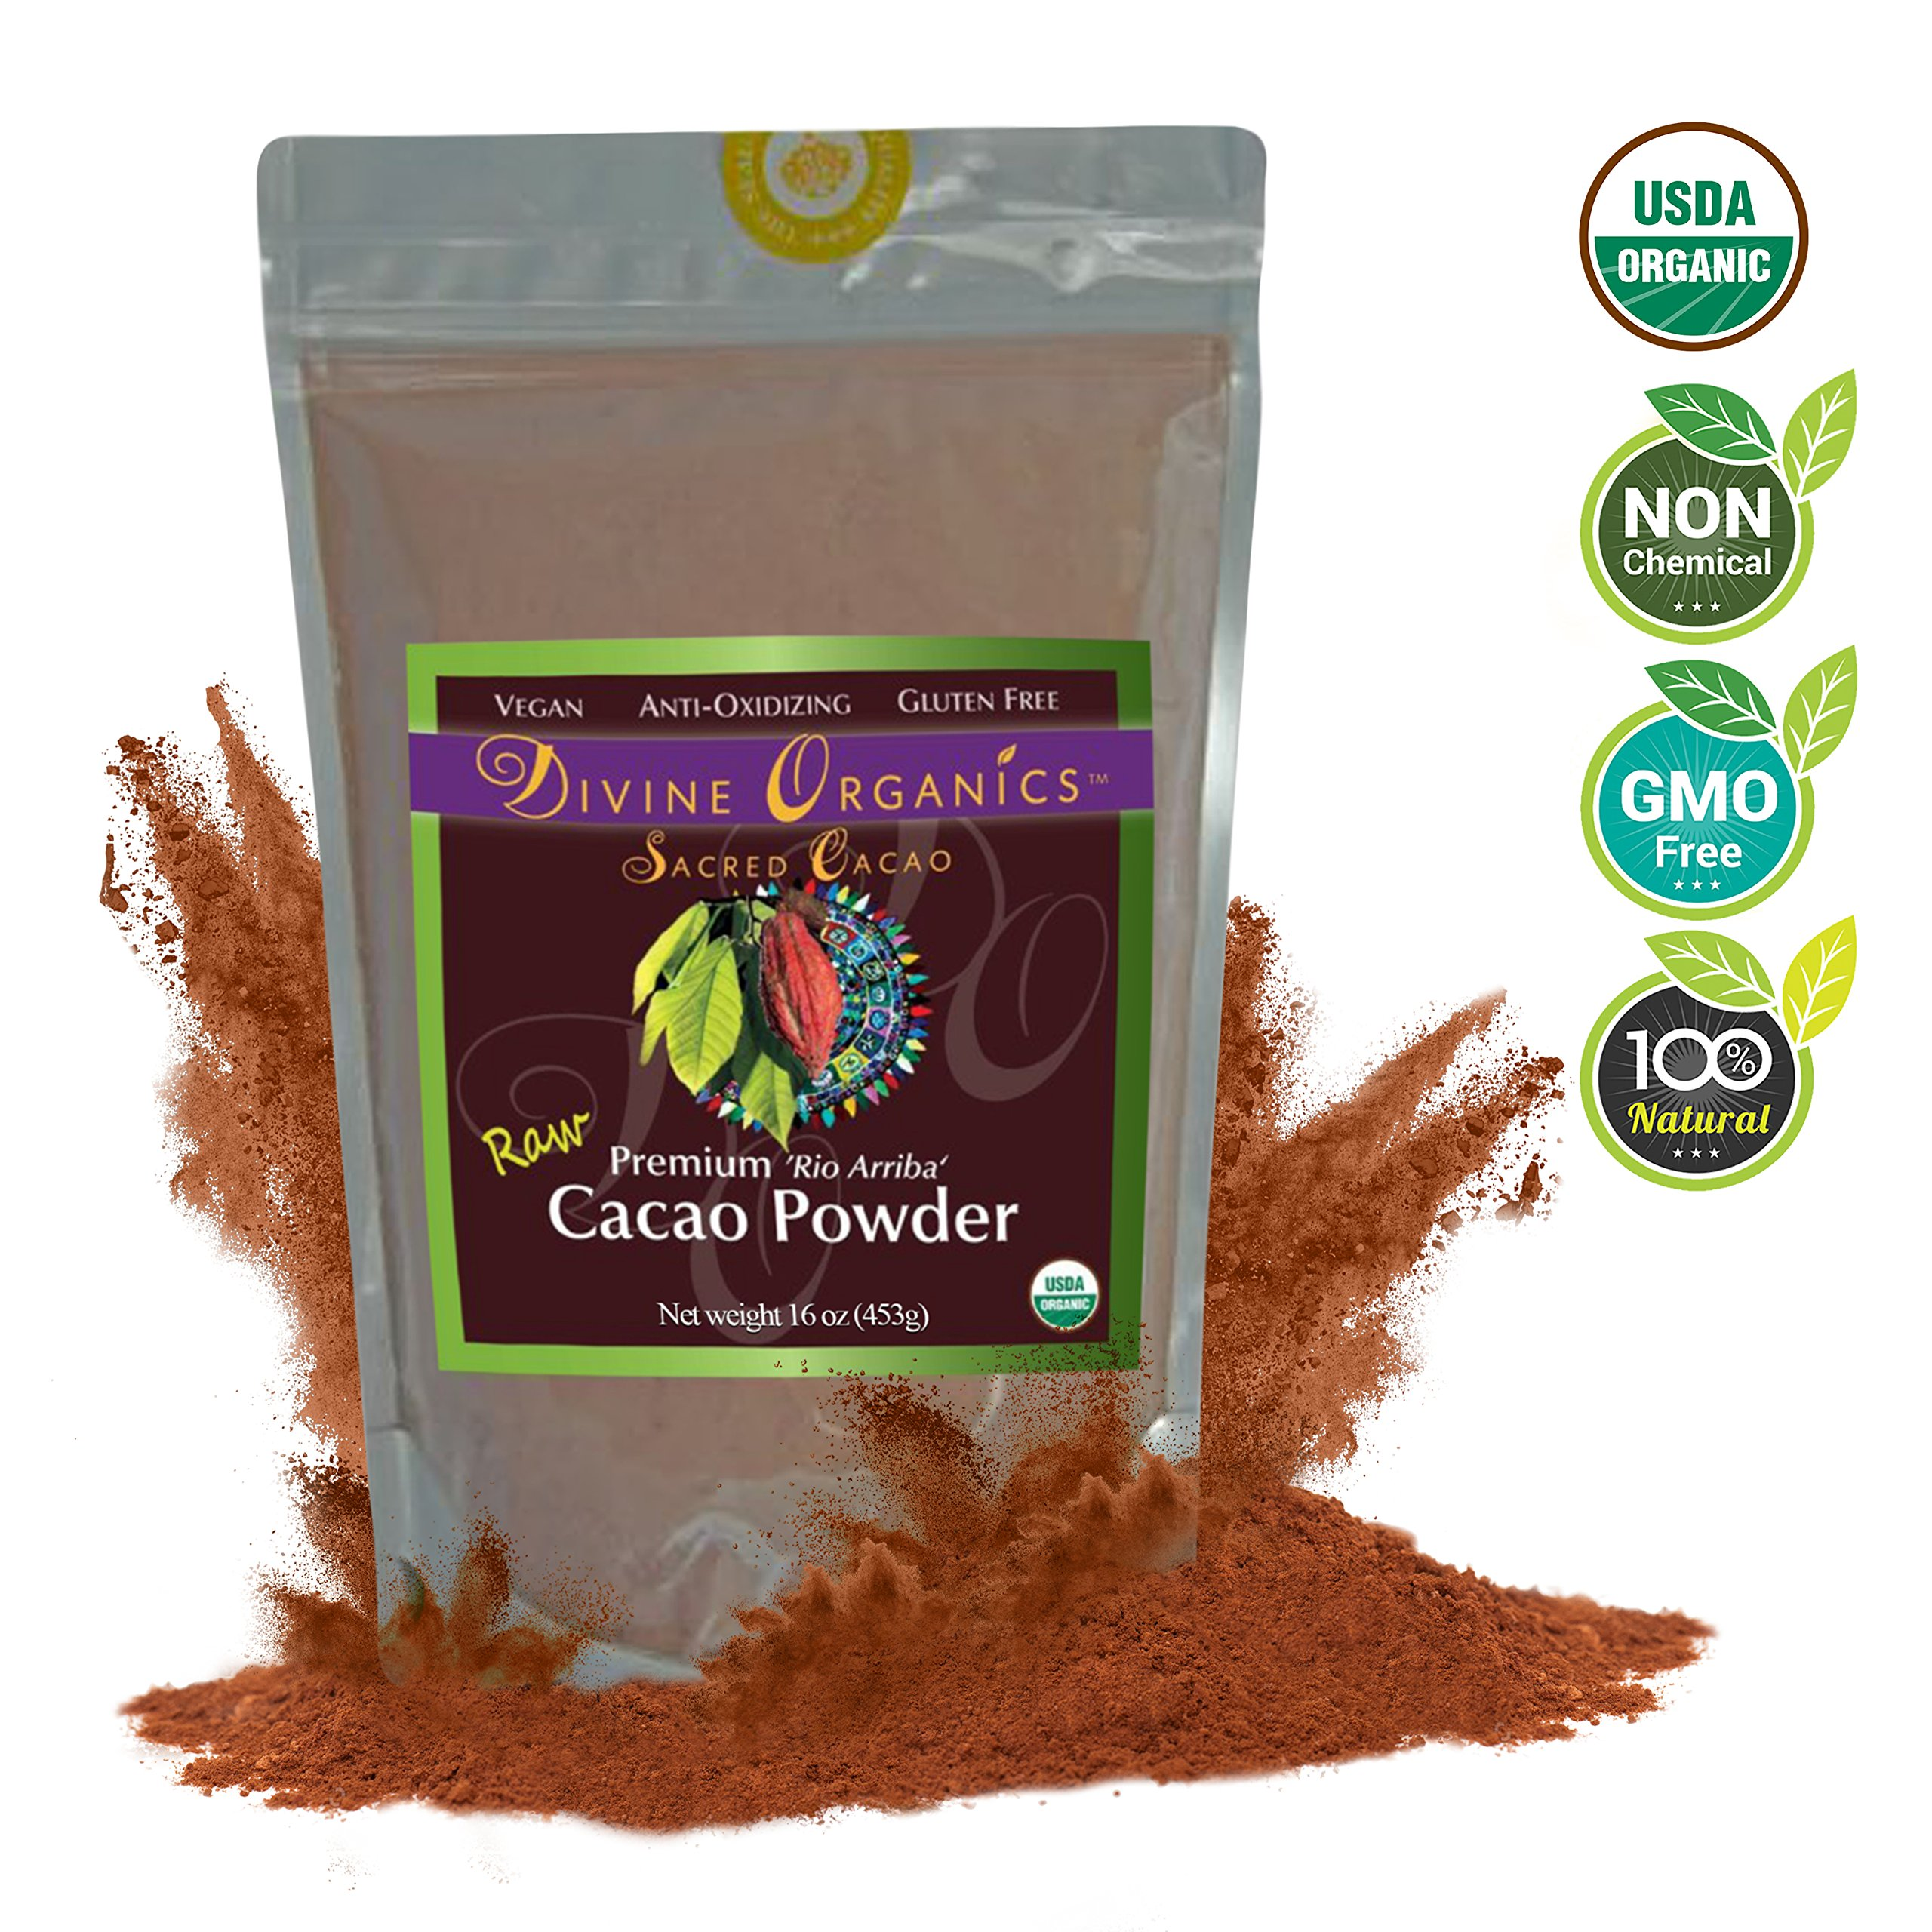 Divine Organics Raw Cacao Powder / Raw Cocoa Powder - Certified Organic - Premium Rio Arriba - Smoothies, Hot Chocolate, Baking, Shakes, Add to Coffee - Rich in Magnesium (16oz)